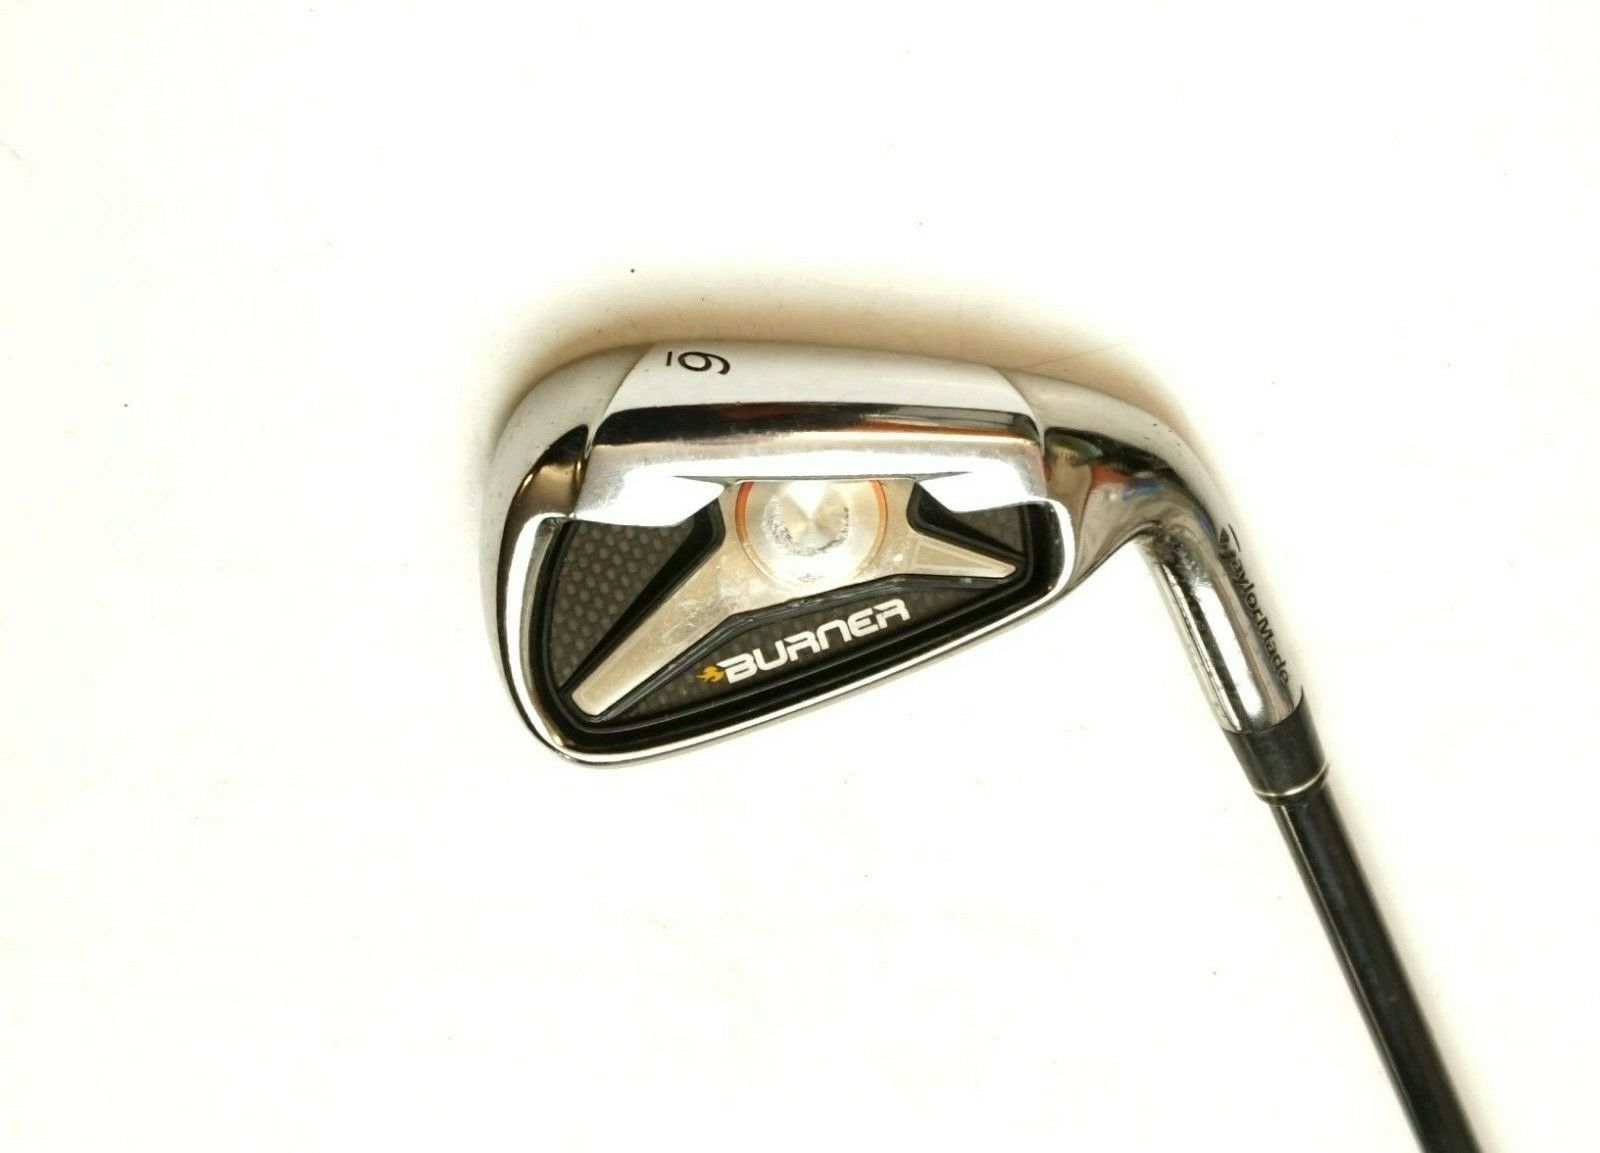 TaylorMade Burner 6 Iron TaylorMade Regular Graphite Shaft Winn Grip